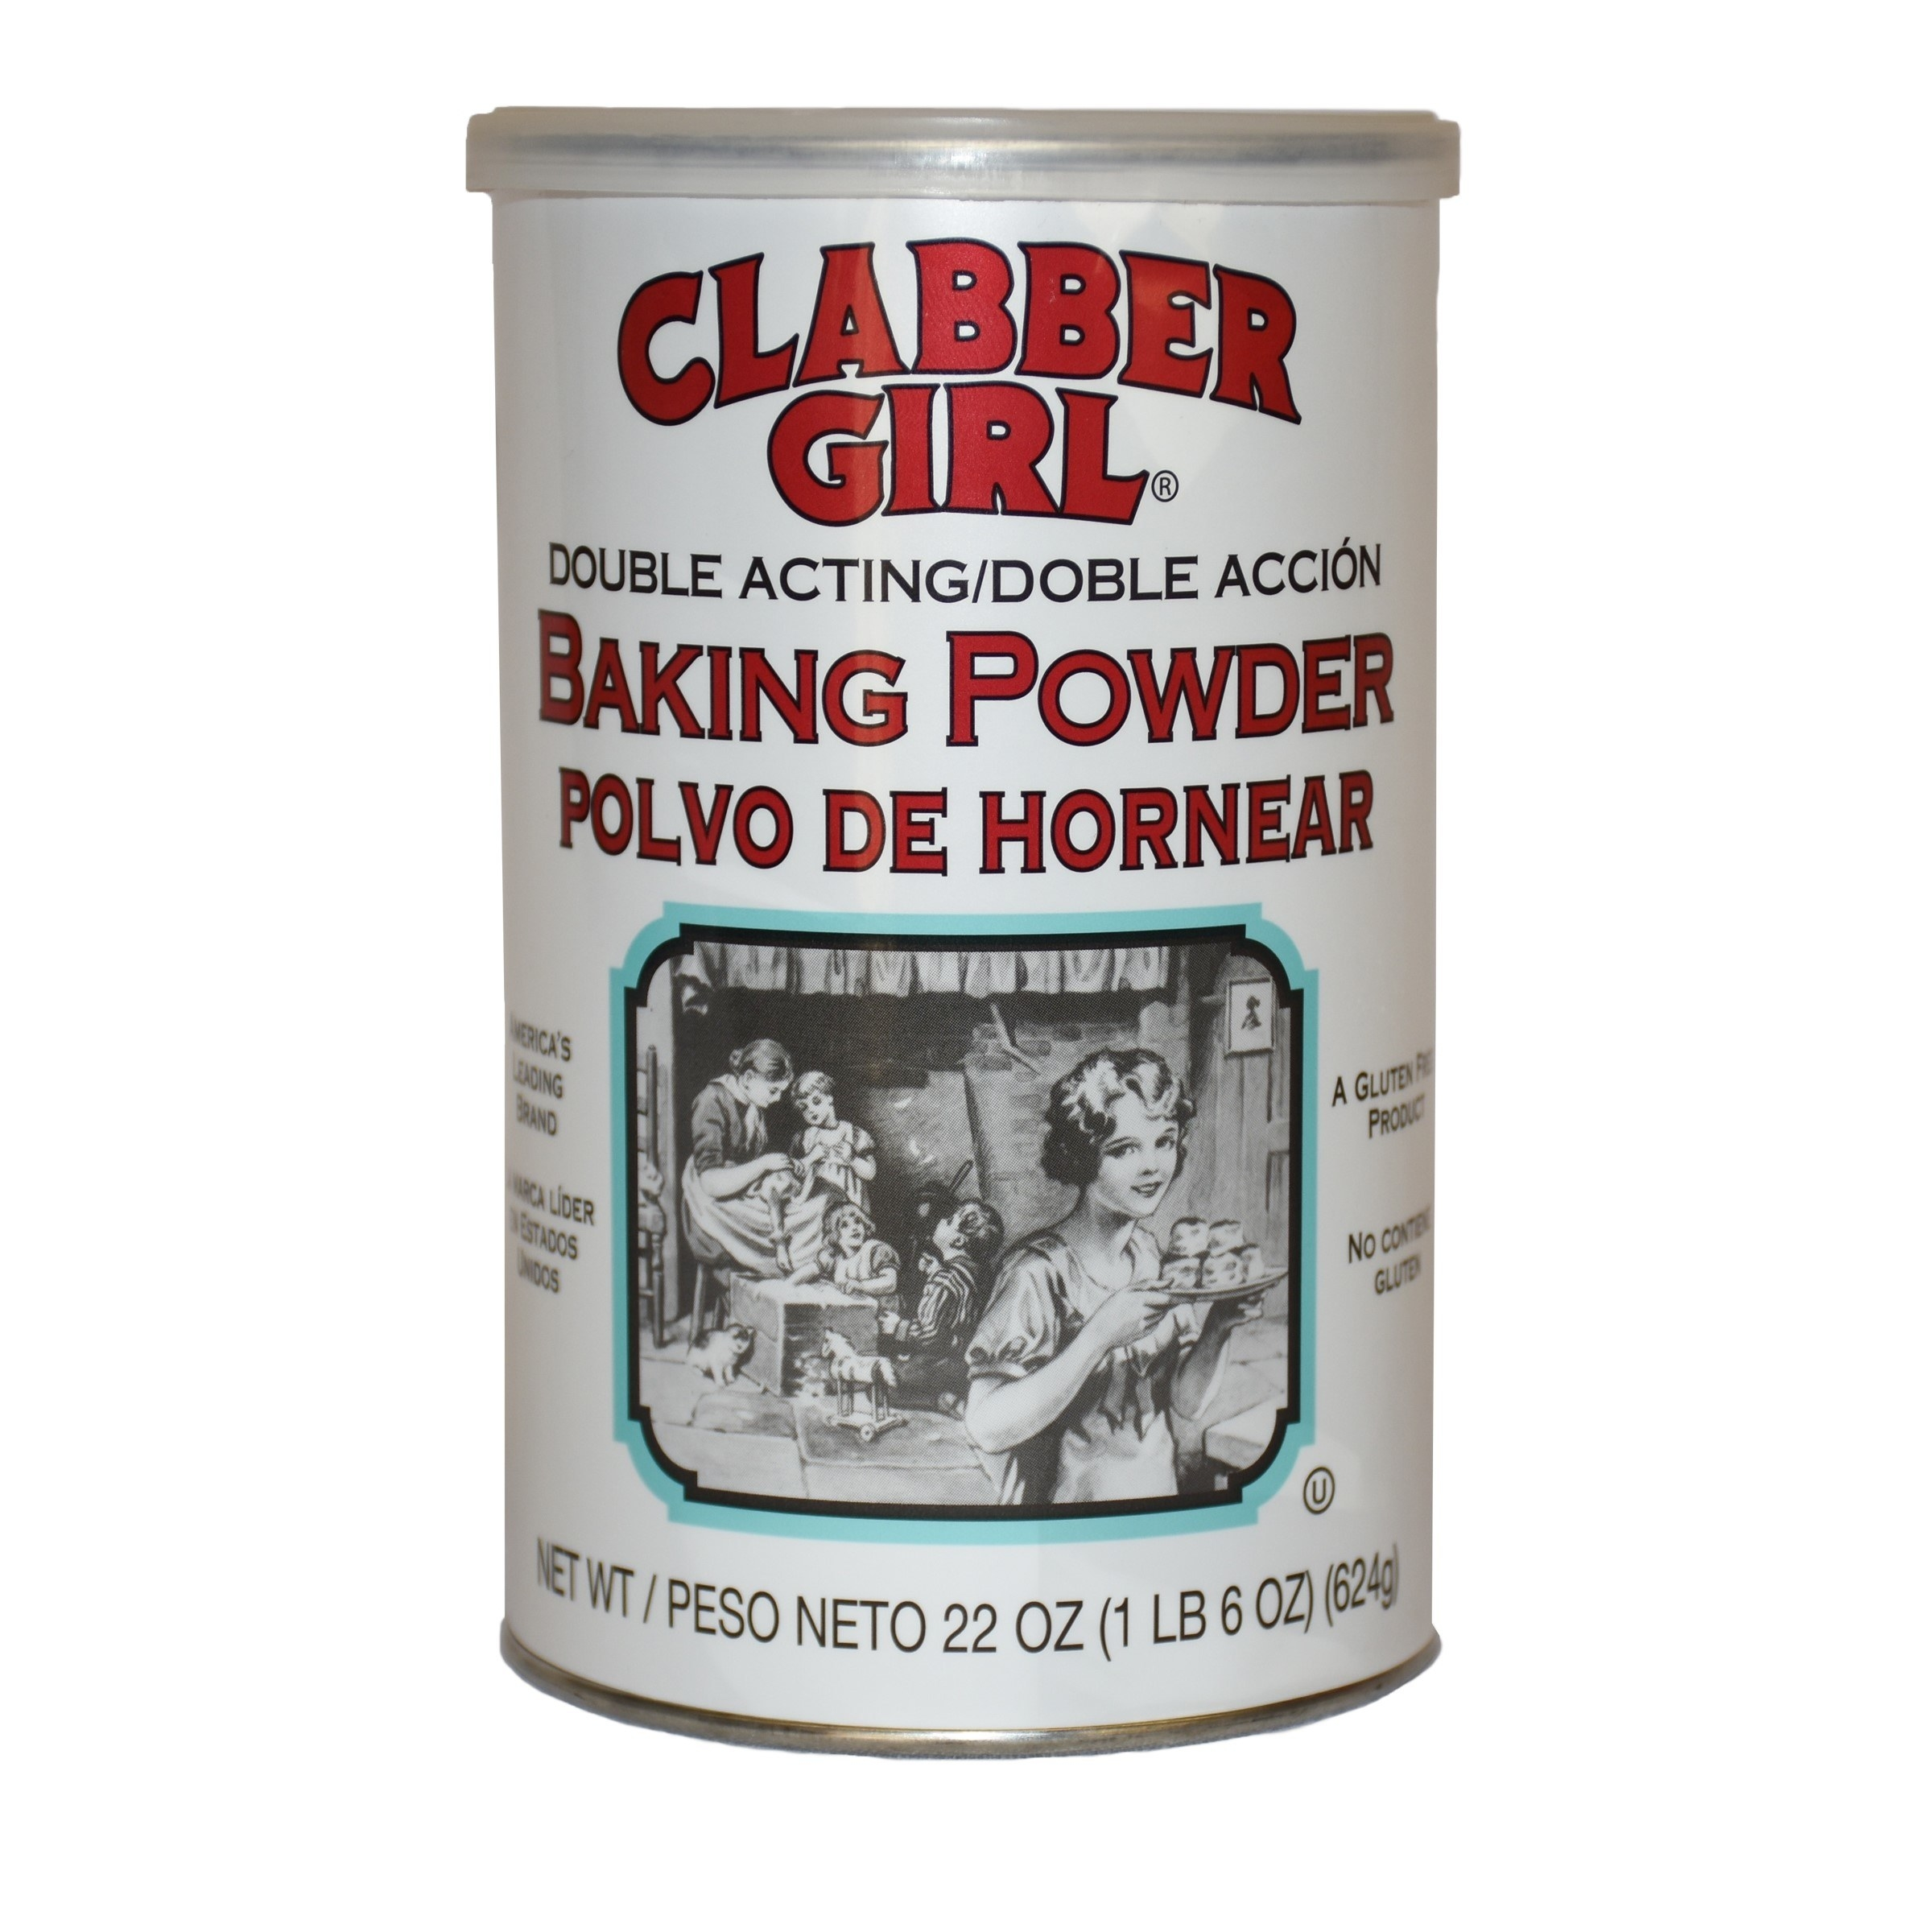 the white container of baking powder